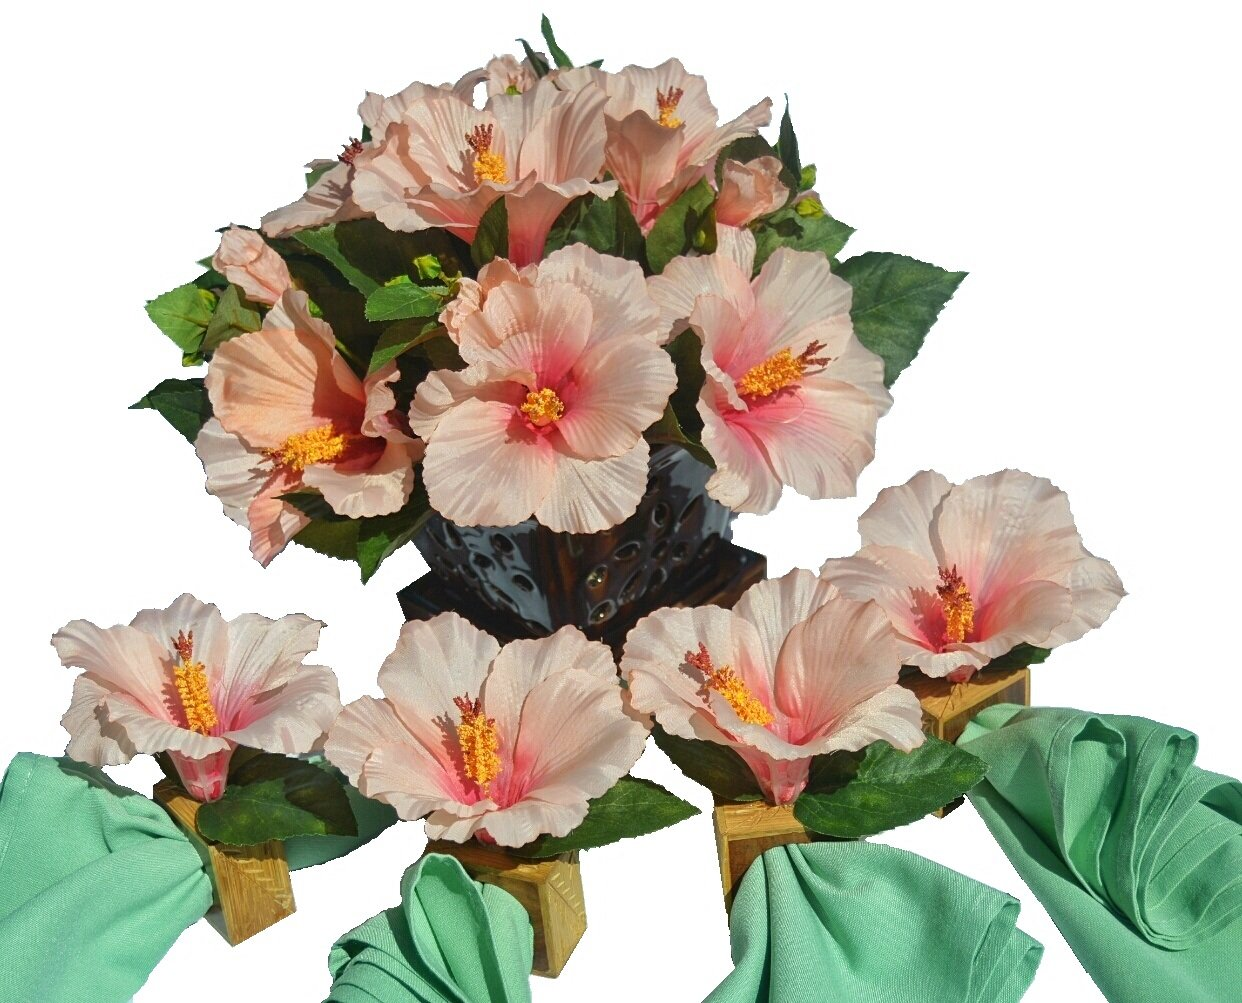 Hospitality Florals Tropical Pink Hibiscus Centerpiece Ensemble with 4 Matching Mango Wood Napkin Rings by Hospitality Florals